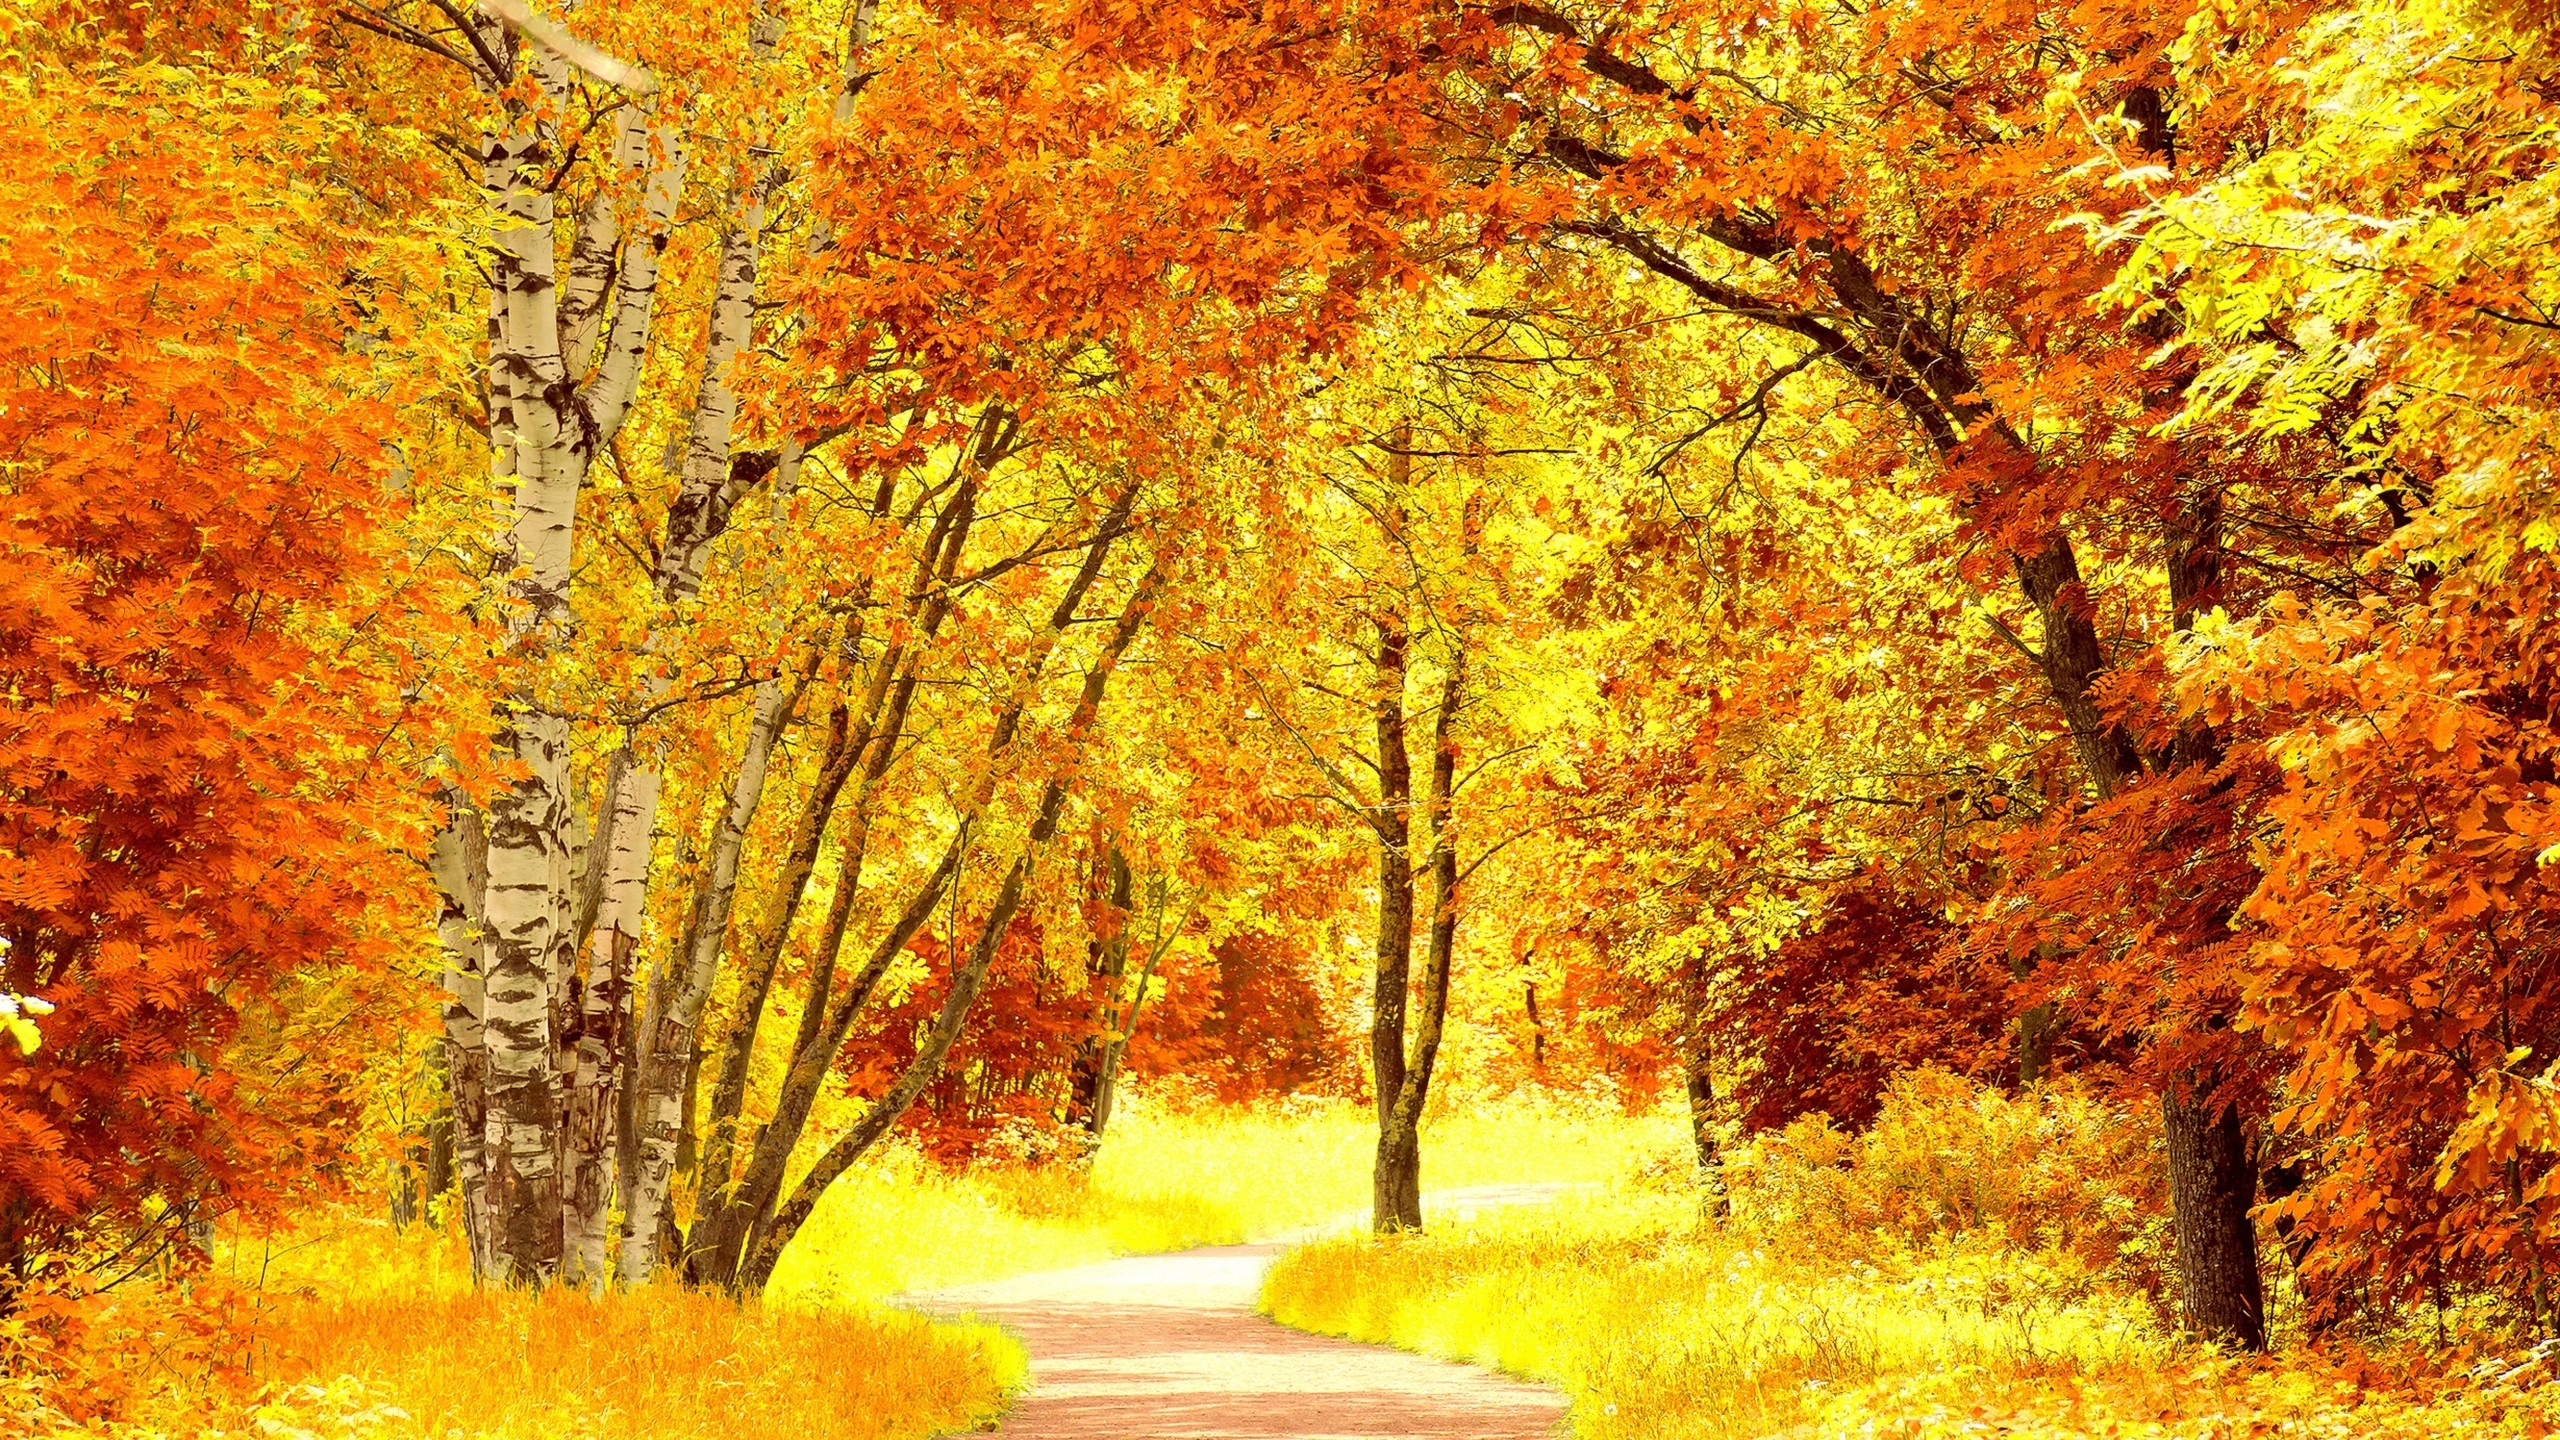 Yellow Autumn Landscape for 2560x1440 HDTV resolution